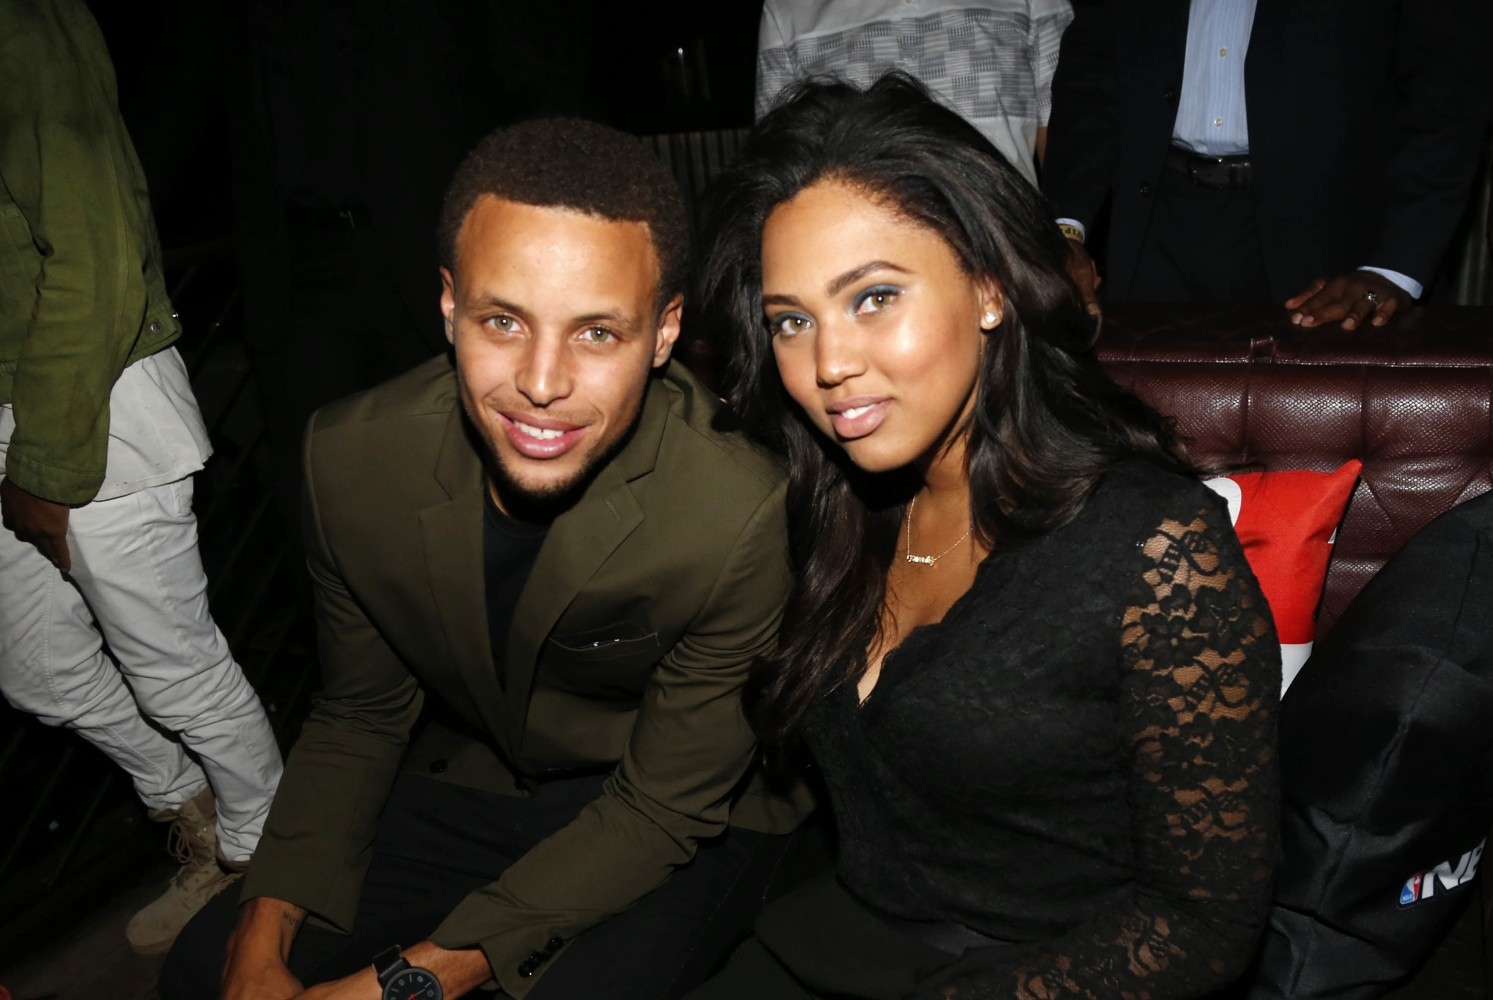 Ayesha Curry, Wife of NBA Star, Is Sick of Being a Tool ...